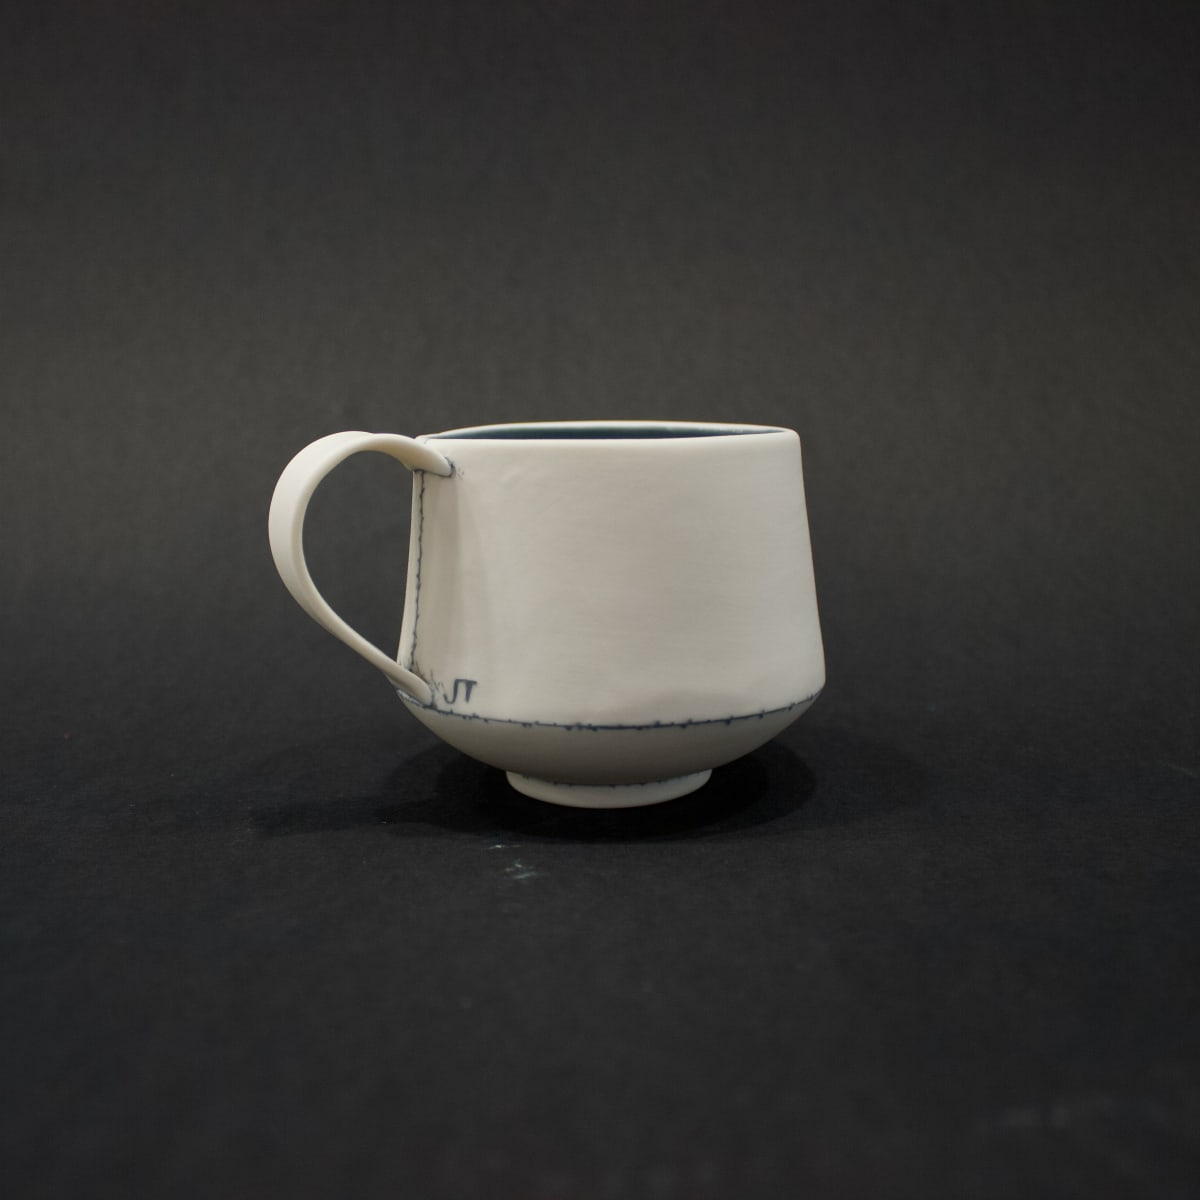 Jessica Thorn Tea Cup, Grey, 2019 Porcelain 7 x 11 x 8 cm 2 3/4 x 4 3/8 x 3 1/8 in